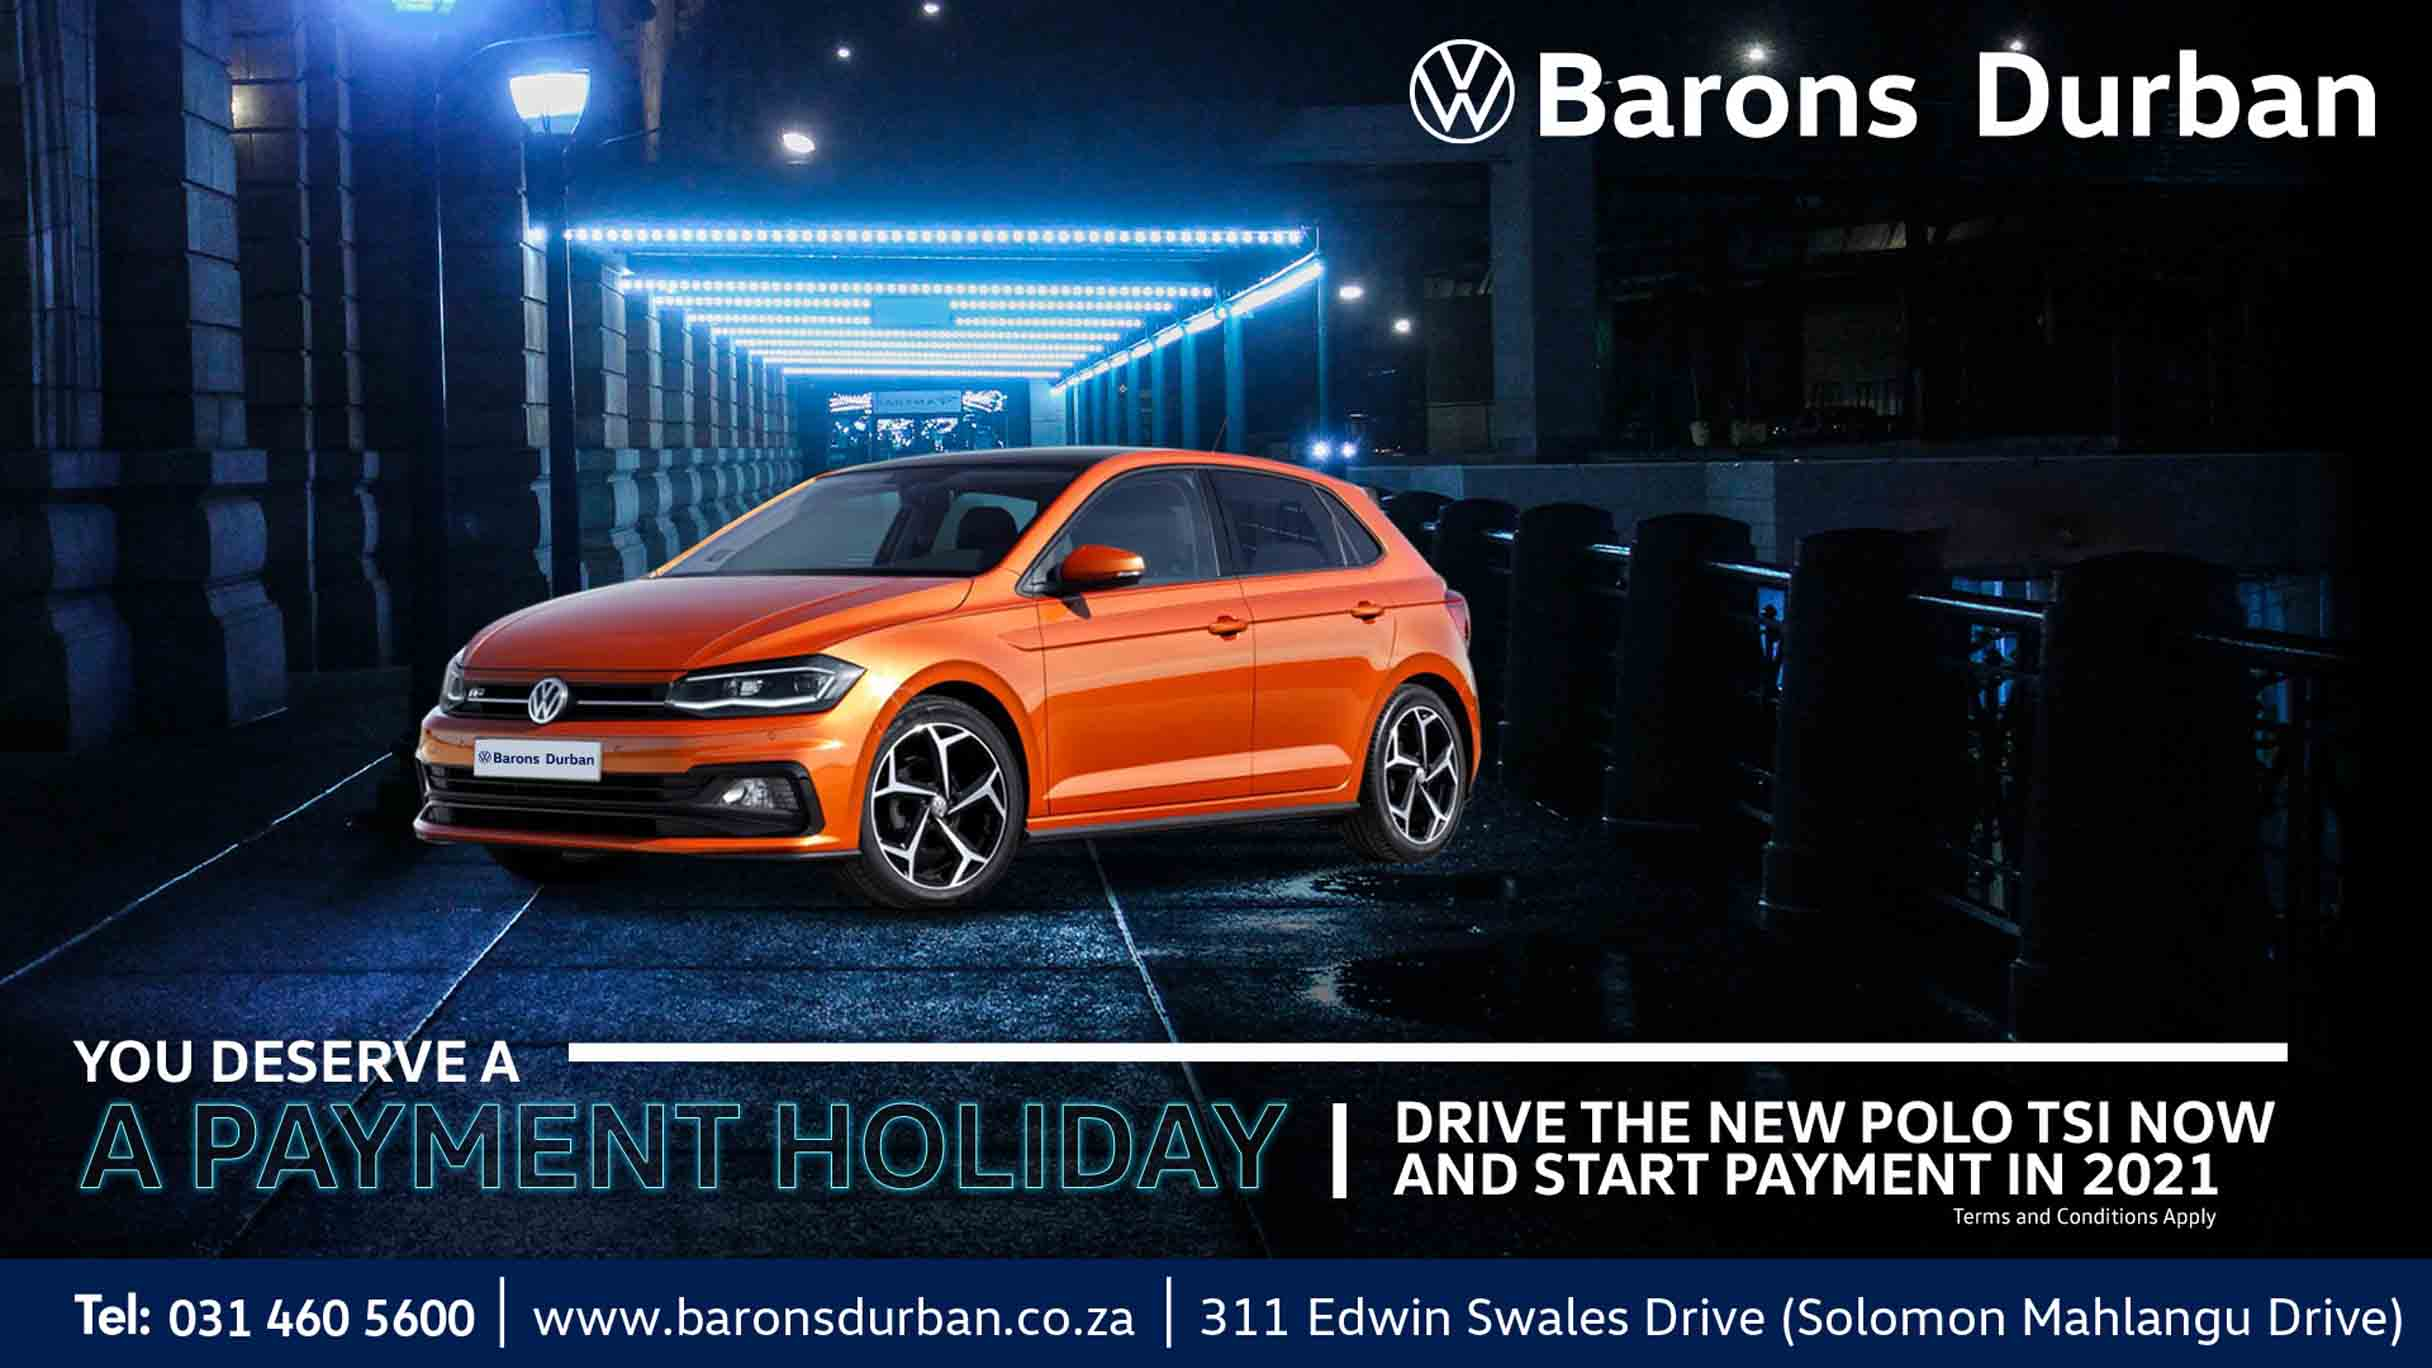 VW Polo offer at Barons Durban